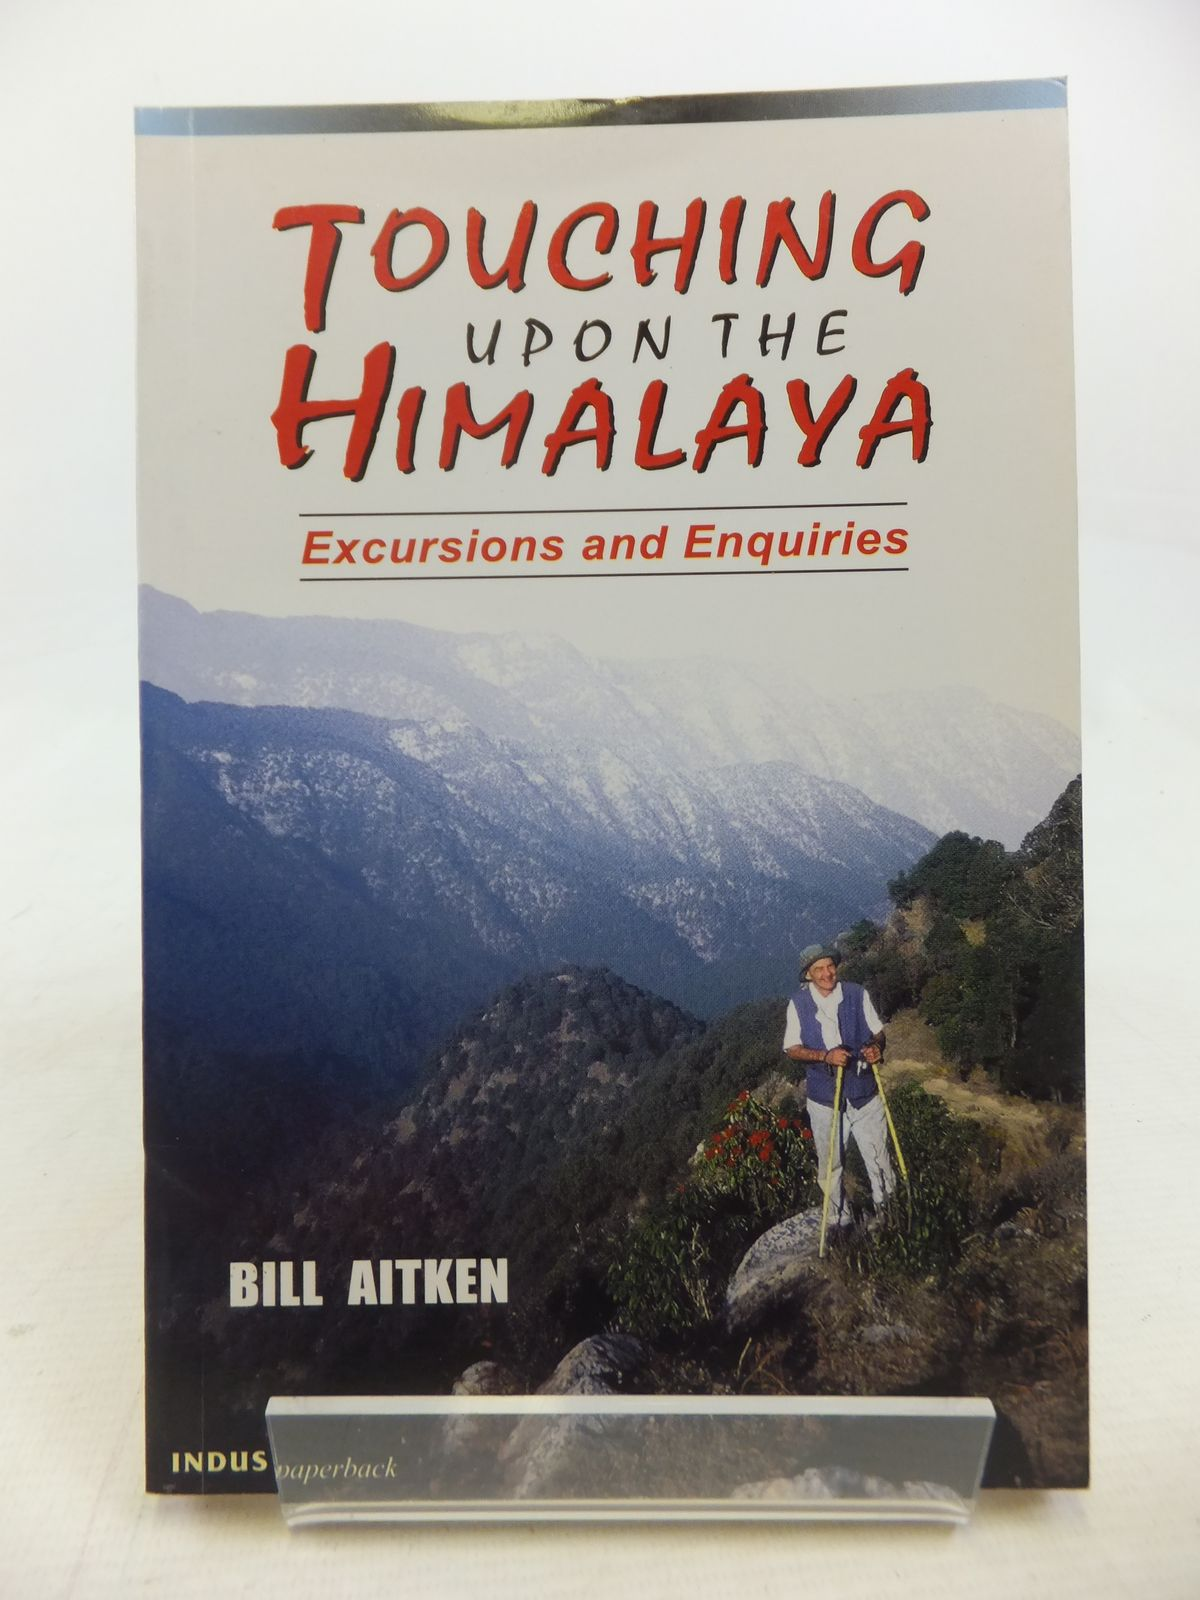 Photo of TOUCHING UPON THE HIMALAYA EXCURSIONS AND ENQUIRIES written by Aitken, Bill illustrated by Kapadia, Geeta published by Indus Publishing Company (STOCK CODE: 1809664)  for sale by Stella & Rose's Books